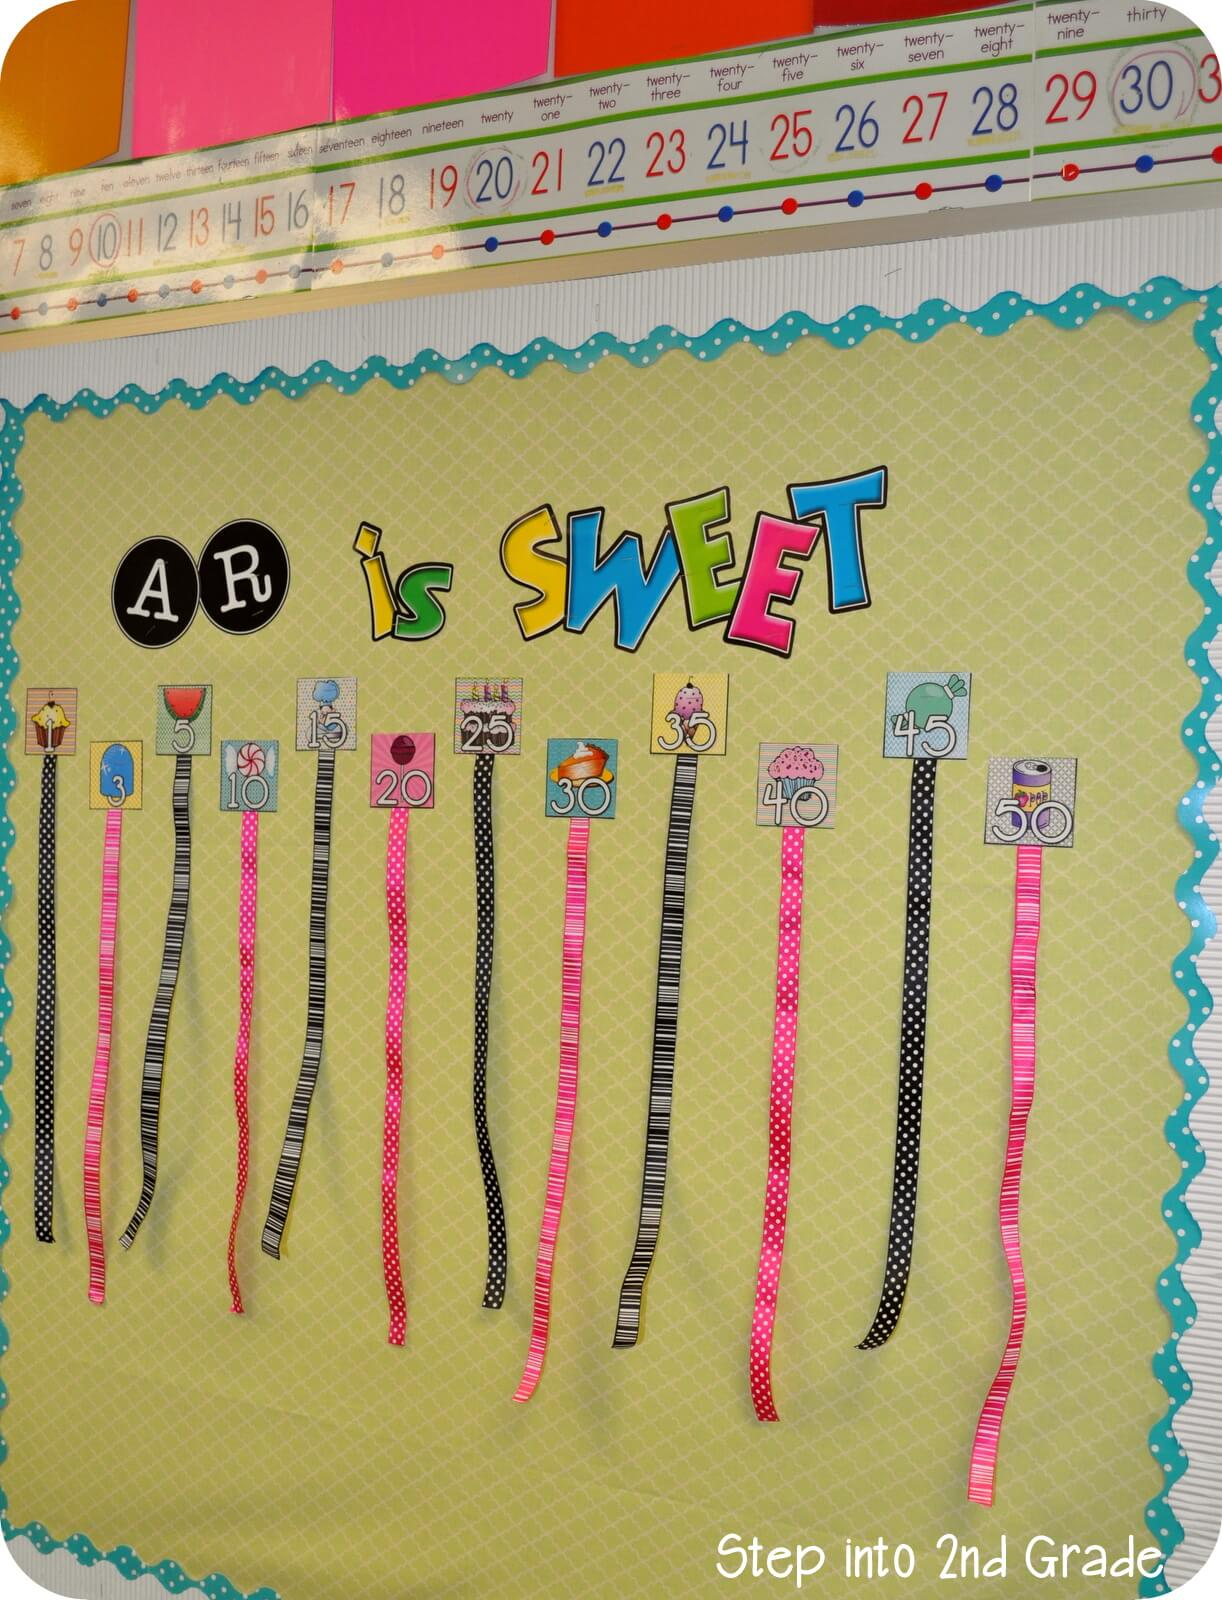 My Classroom - Step into 2nd Grade